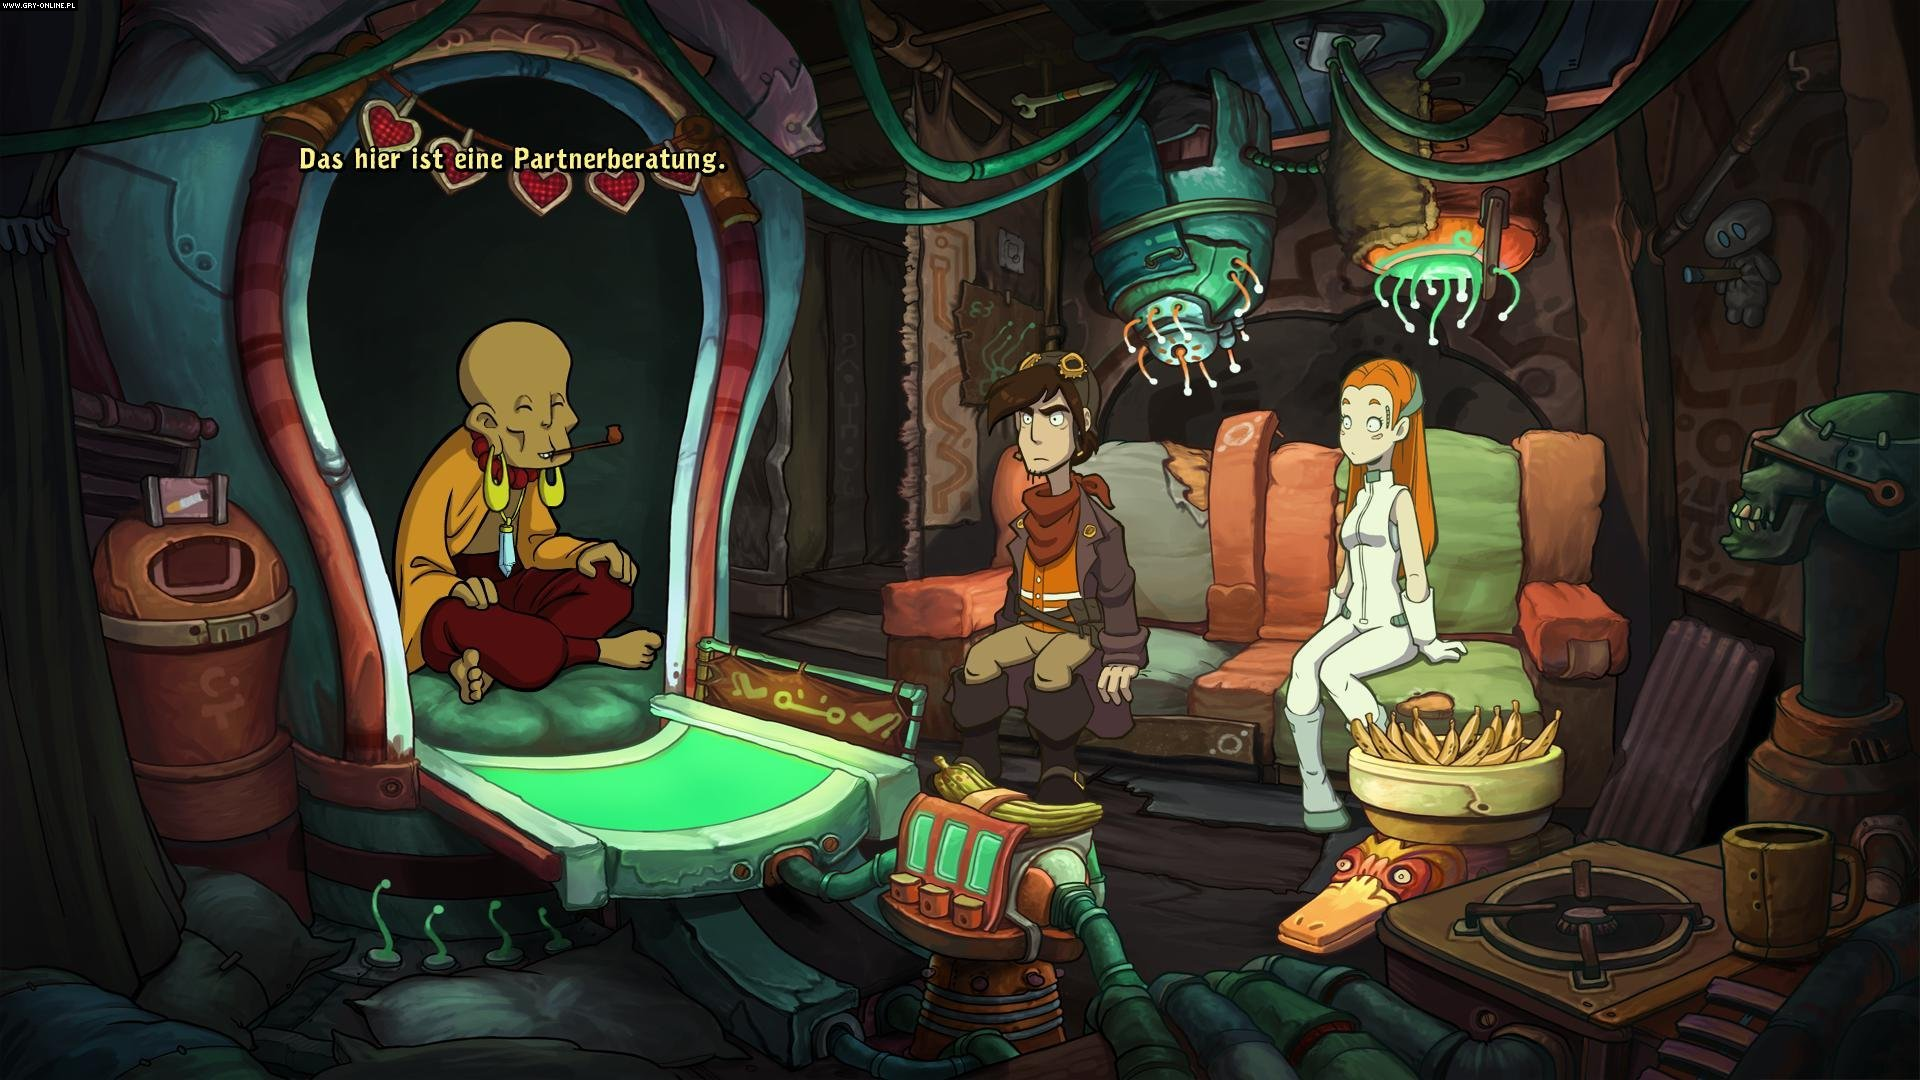 Chaos on Deponia PC, PS4, XONE Gry Screen 2/9, Daedalic Entertainment